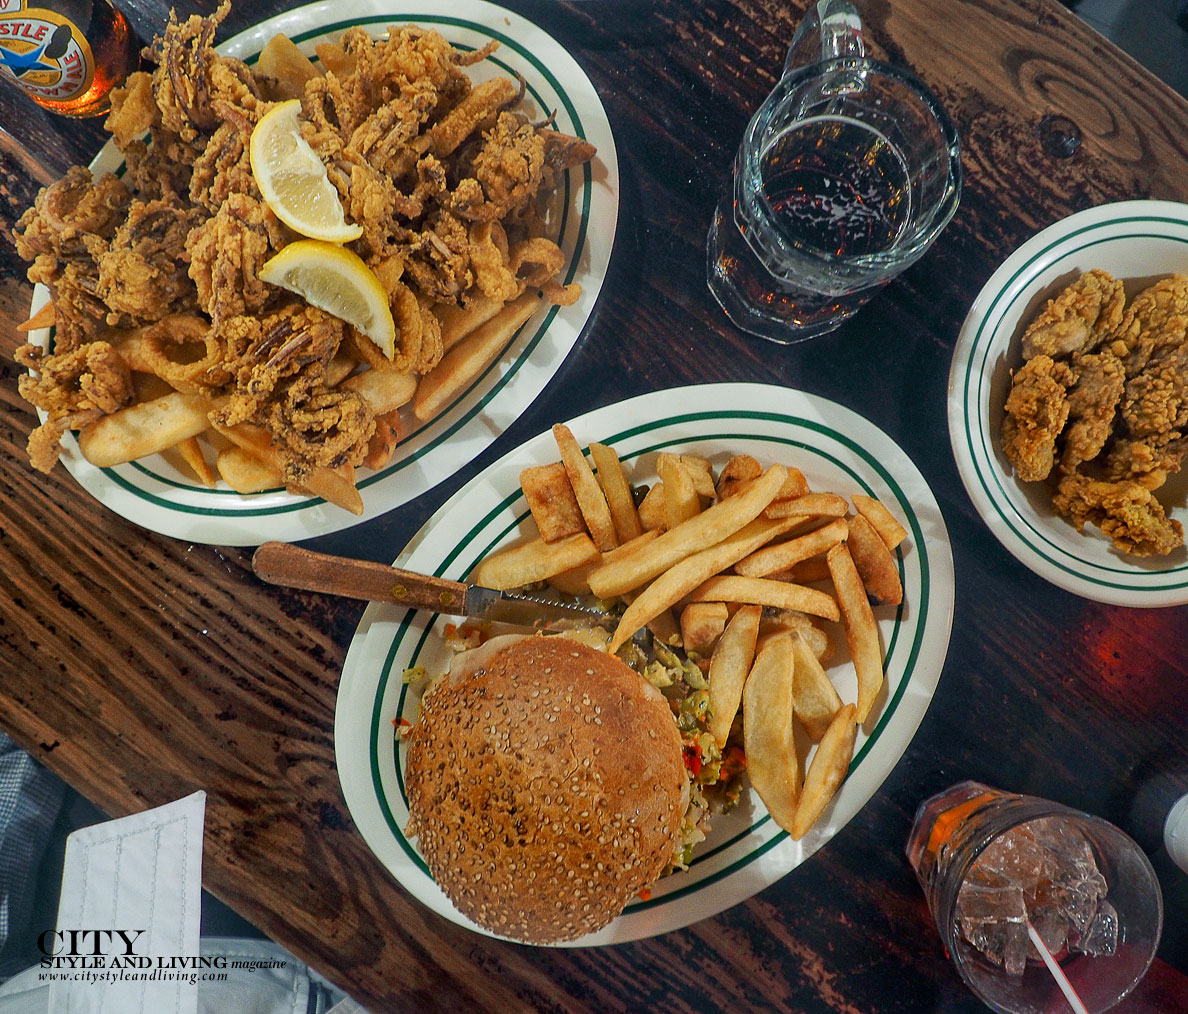 City Style and Living Magazine Cafe Maspero New Orleans dinner fried oysters and muffaletta sandwich